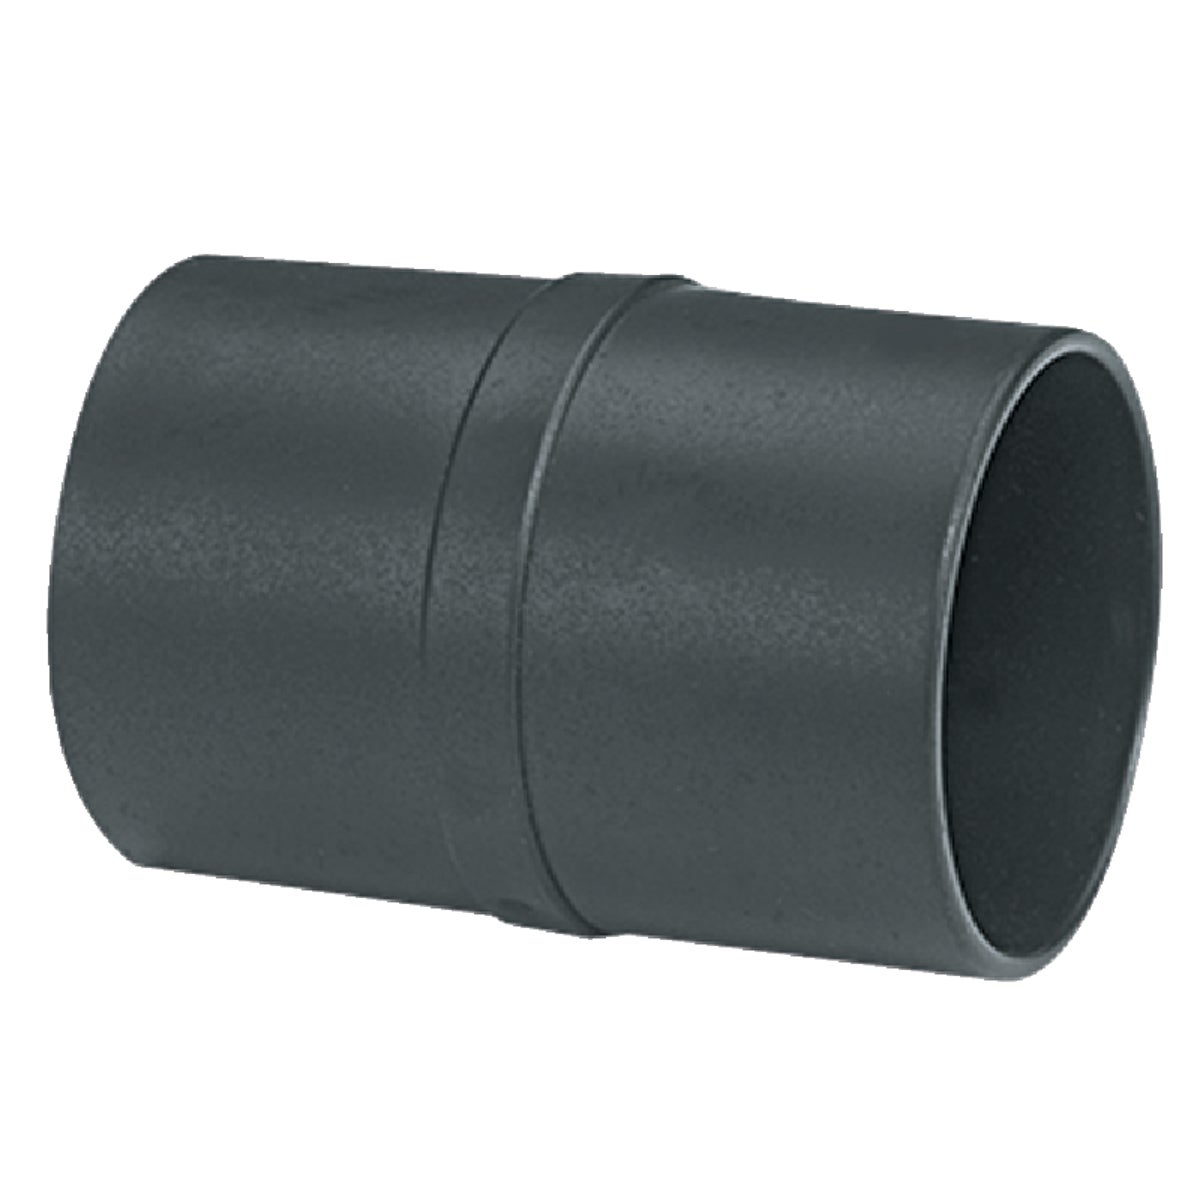 """2-1/2"""" BLOWER CONNECTOR - 904-27 by Shop Vac Corp"""